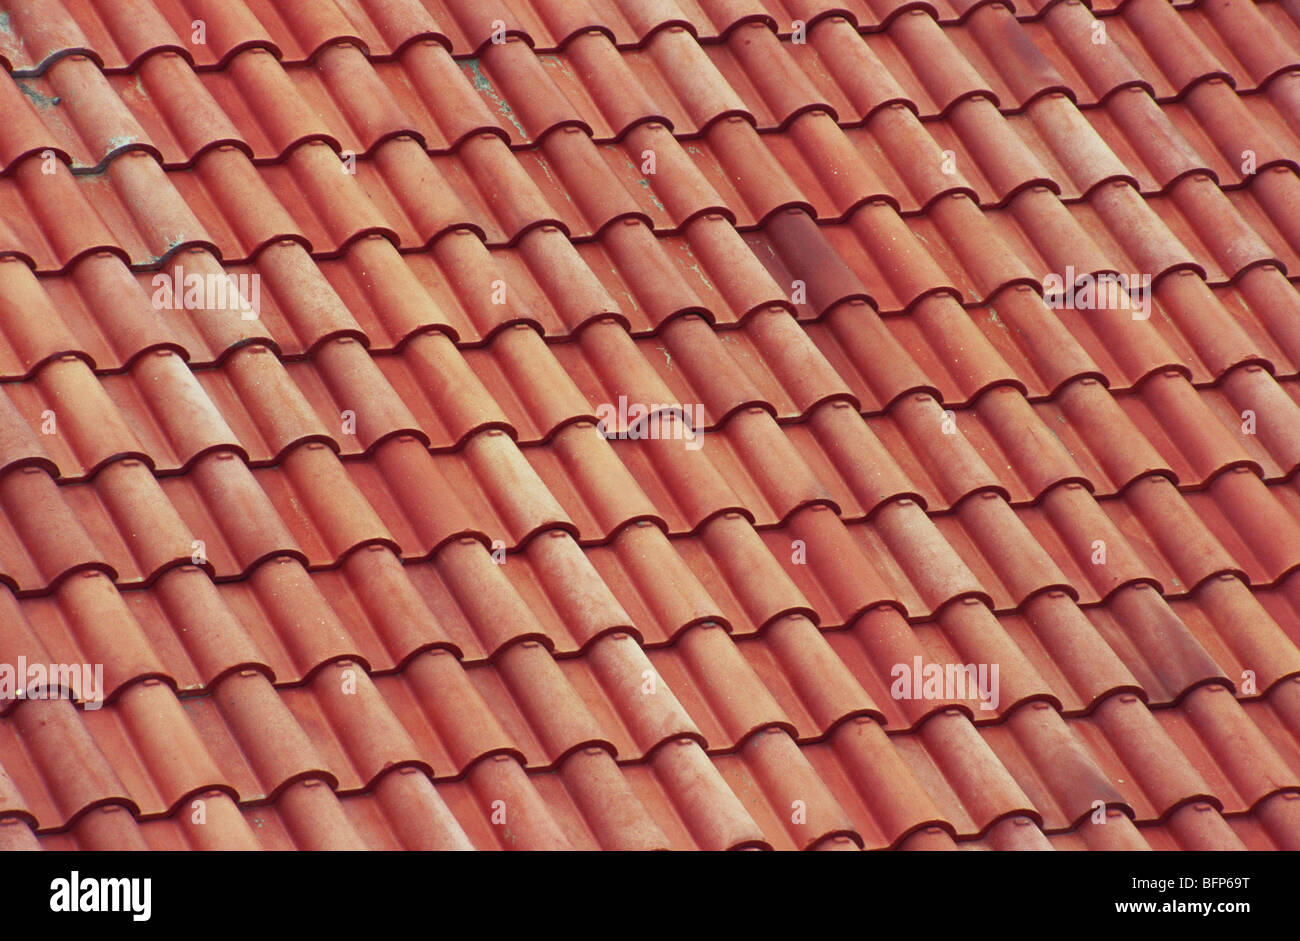 Nmk 66213 red terracotta roof tiles of guest house of swaminarayan nmk 66213 red terracotta roof tiles of guest house of swaminarayan temple sarangpur gujarat india dailygadgetfo Image collections